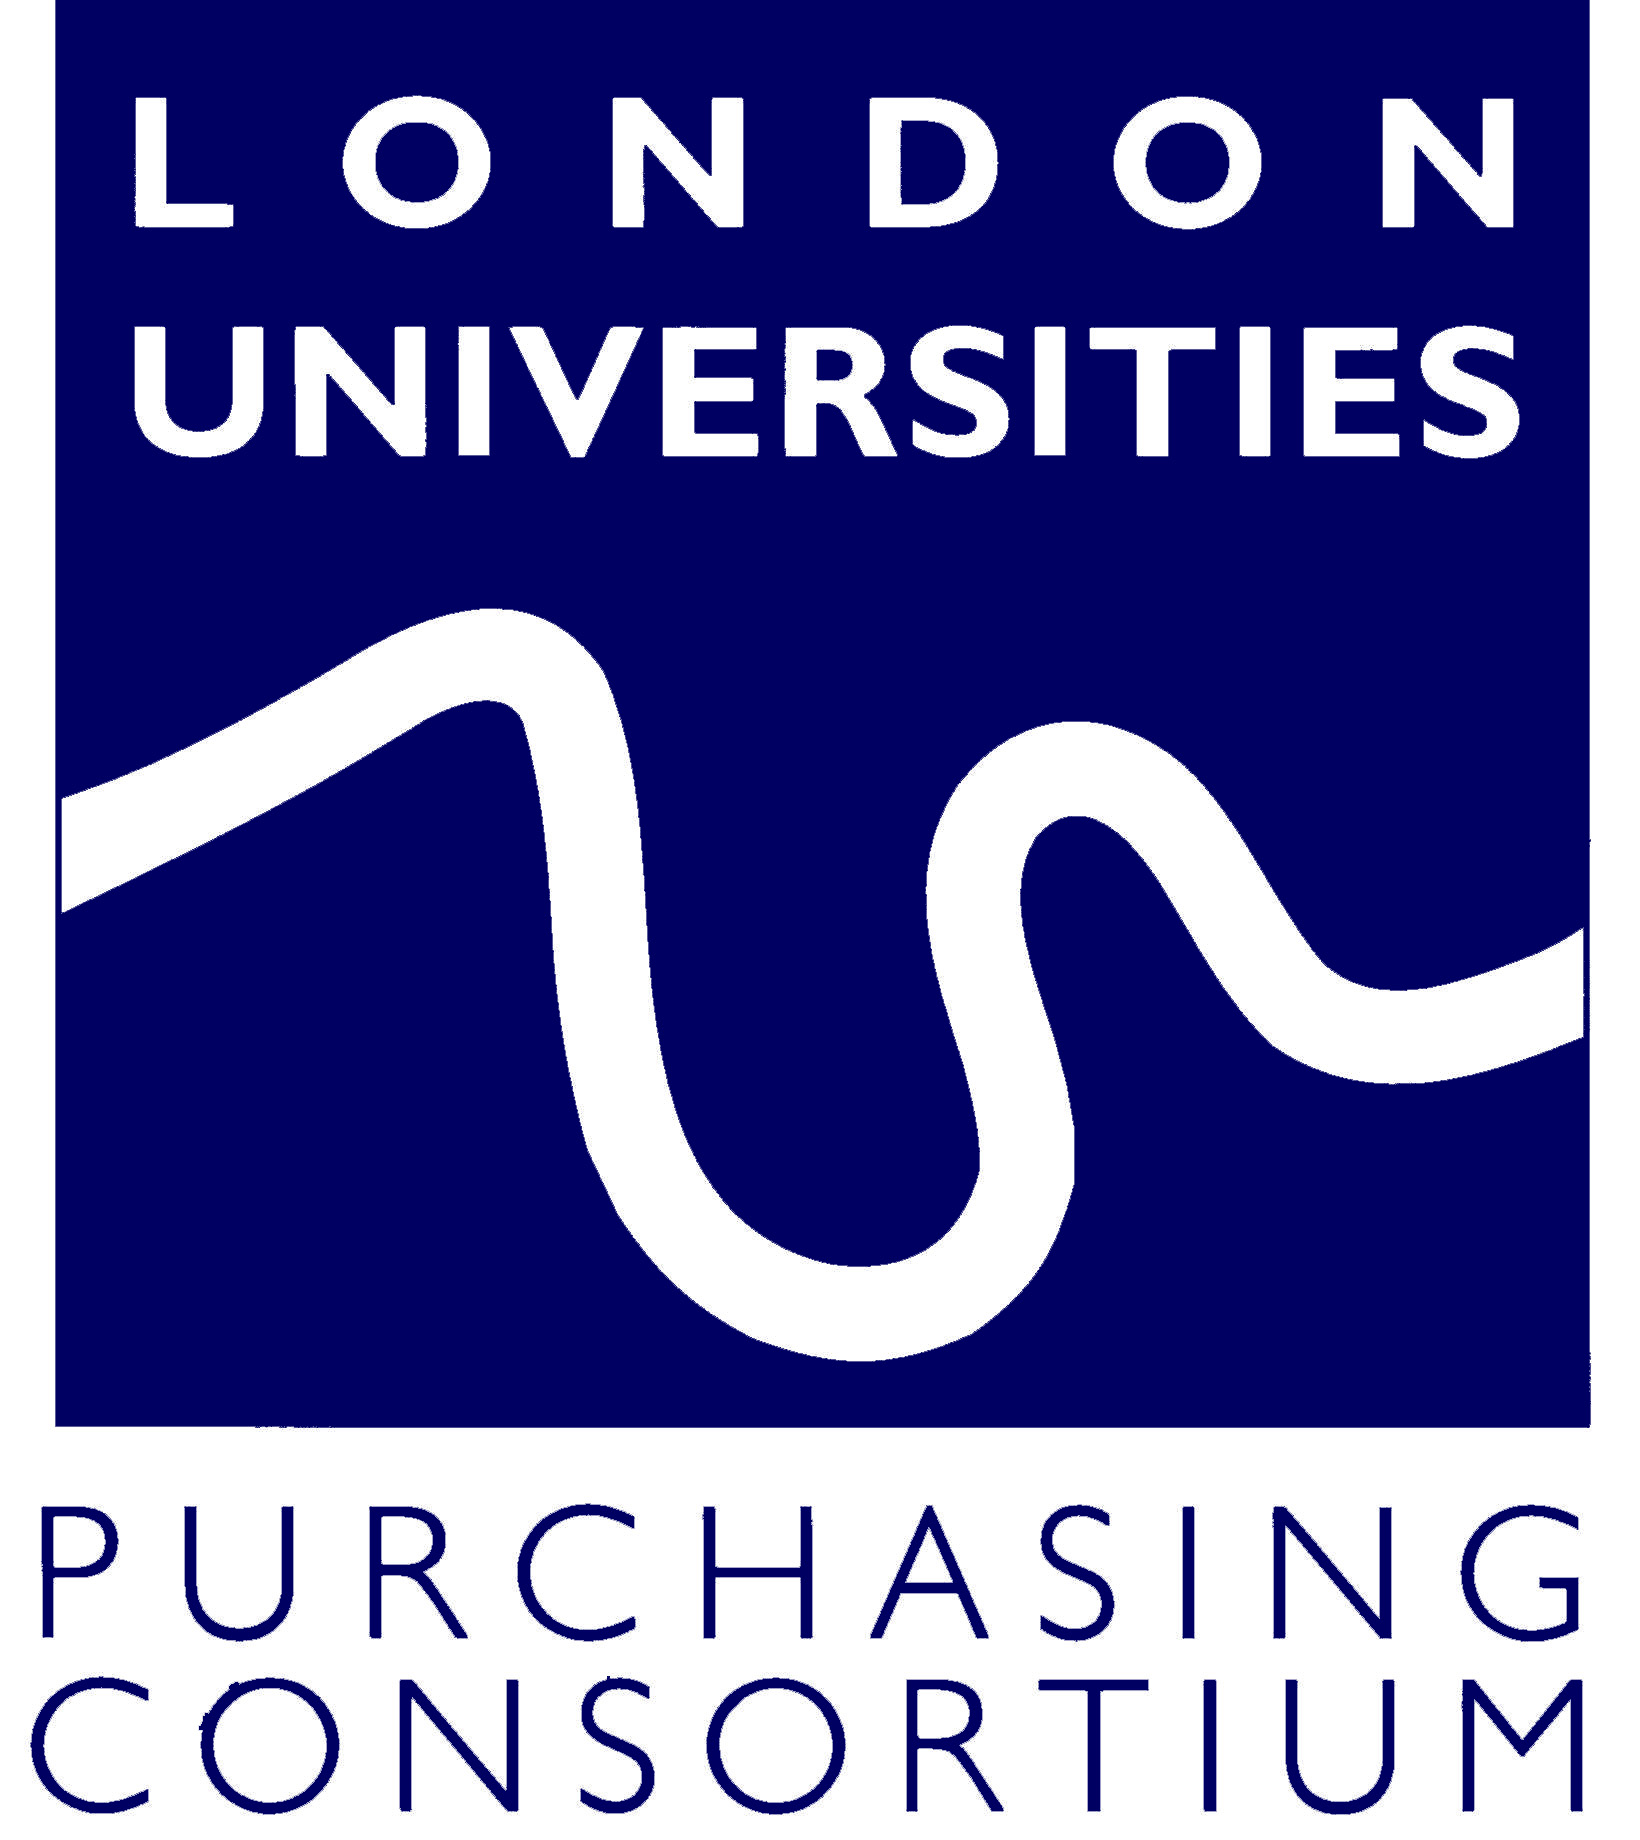 London Universities Purchasing Consortium Logo